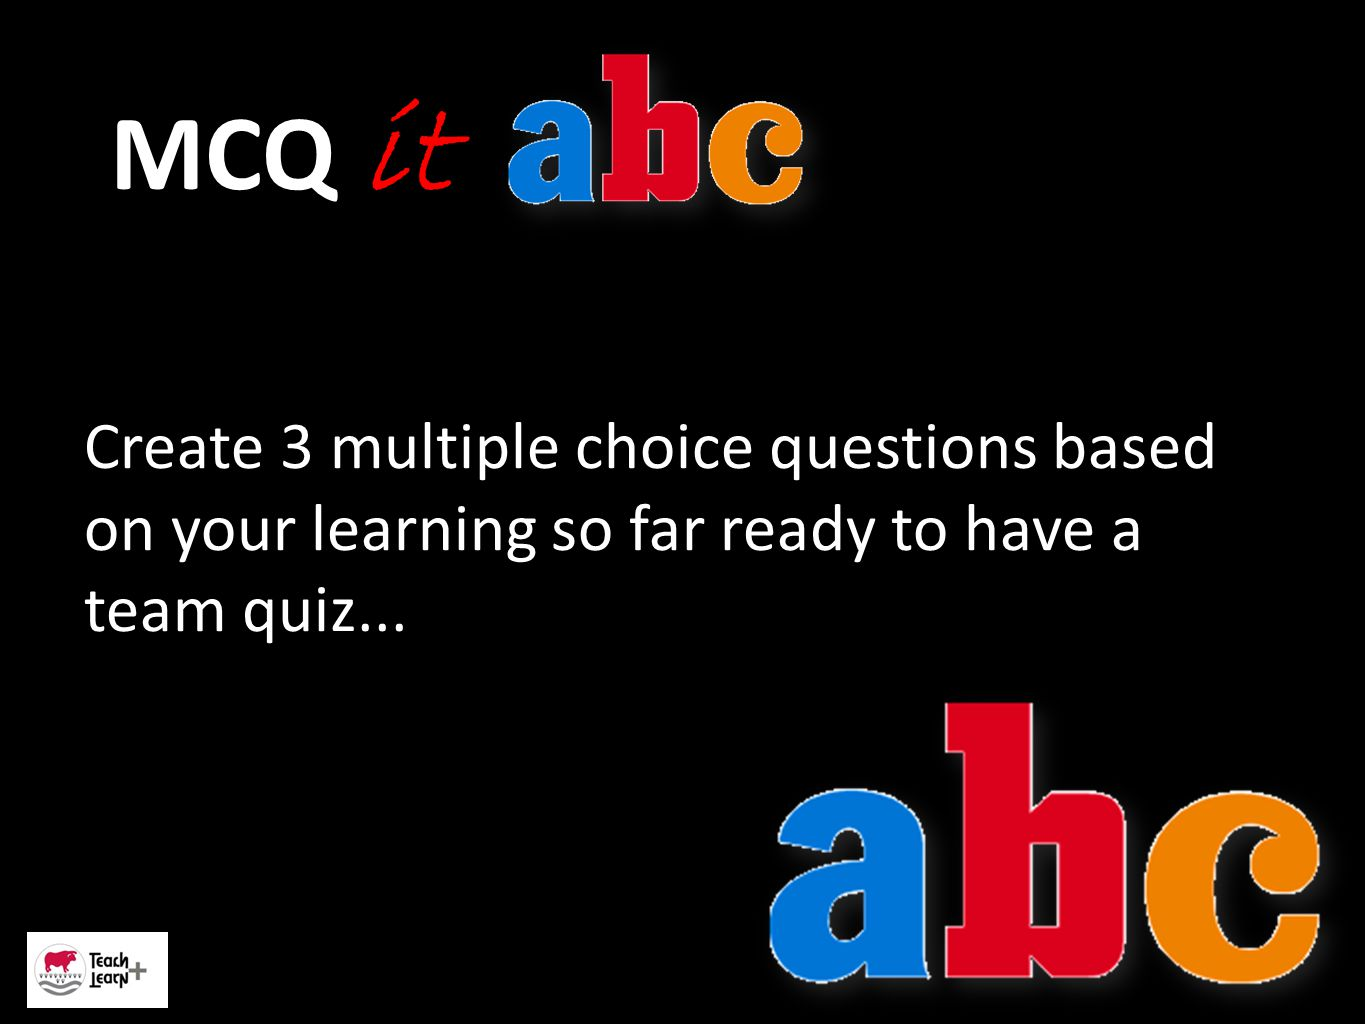 MCQ it Create 3 multiple choice questions based on your learning so far ready to have a team quiz...